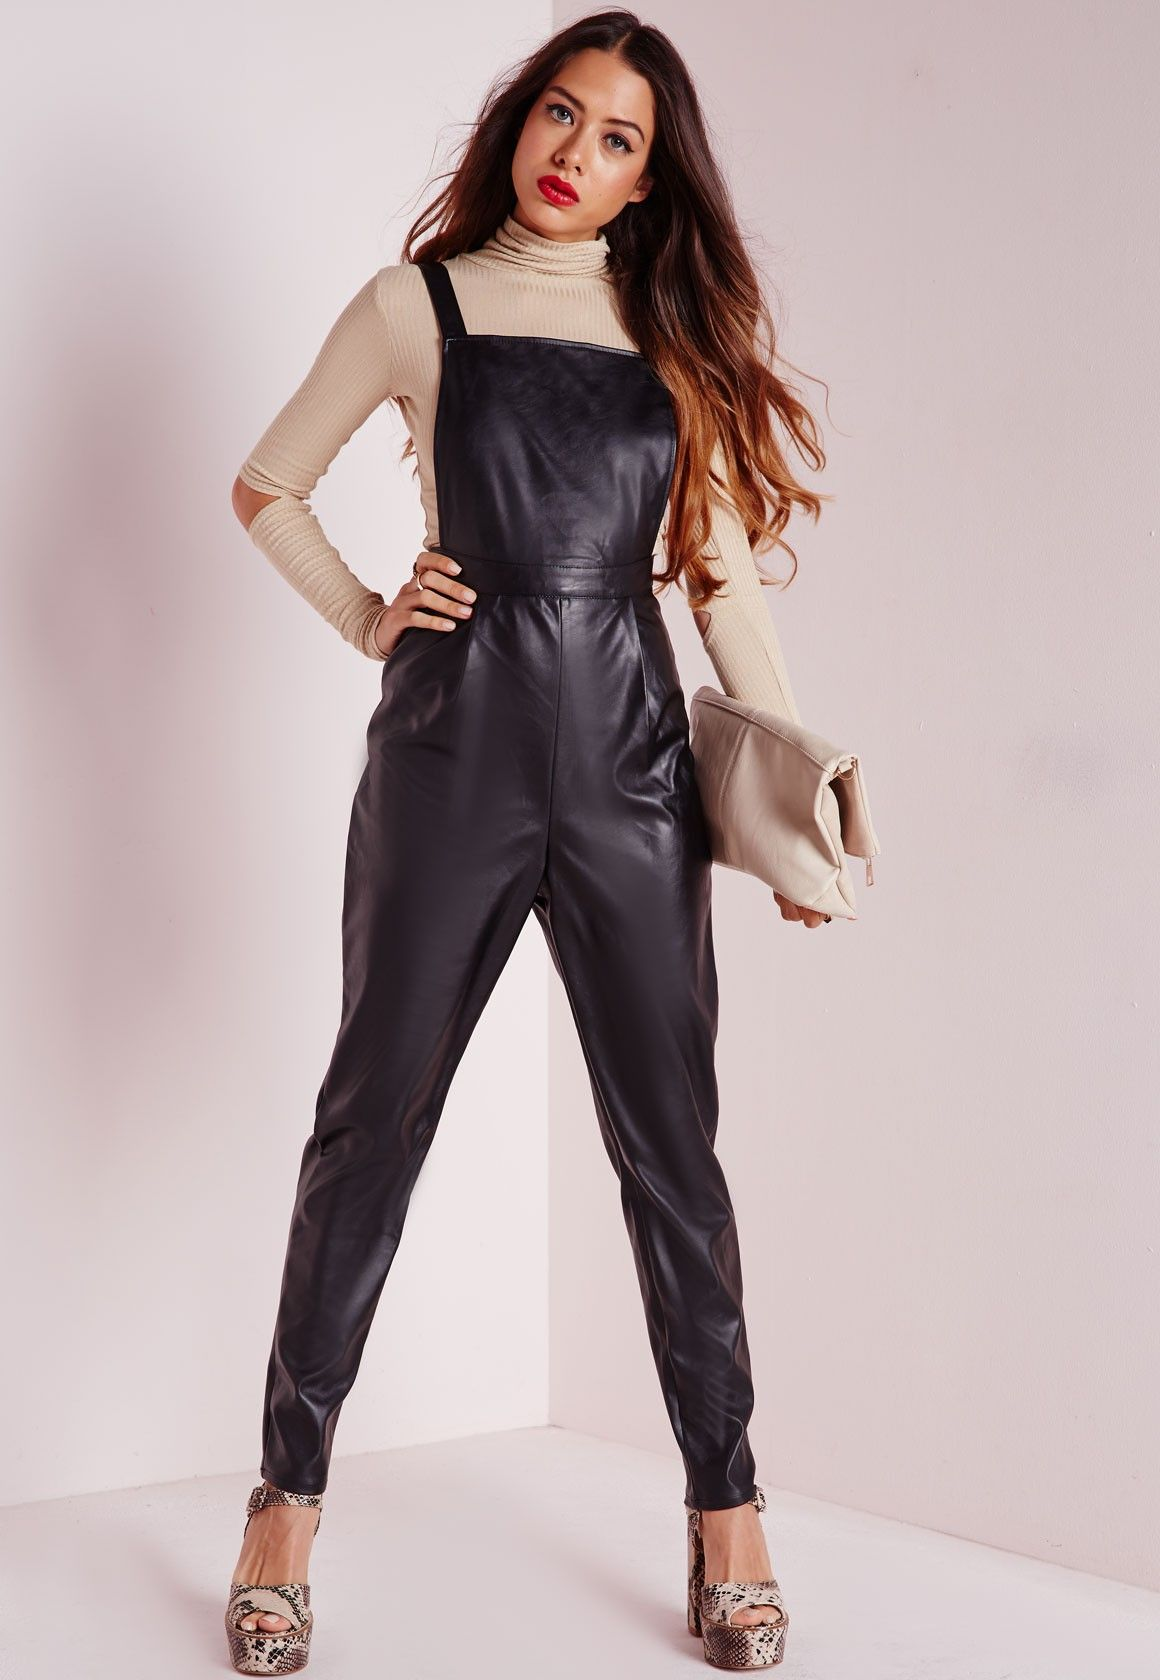 buying now in stock shop for official Missguided - Faux Leather Overalls Black | Cheap finds ...